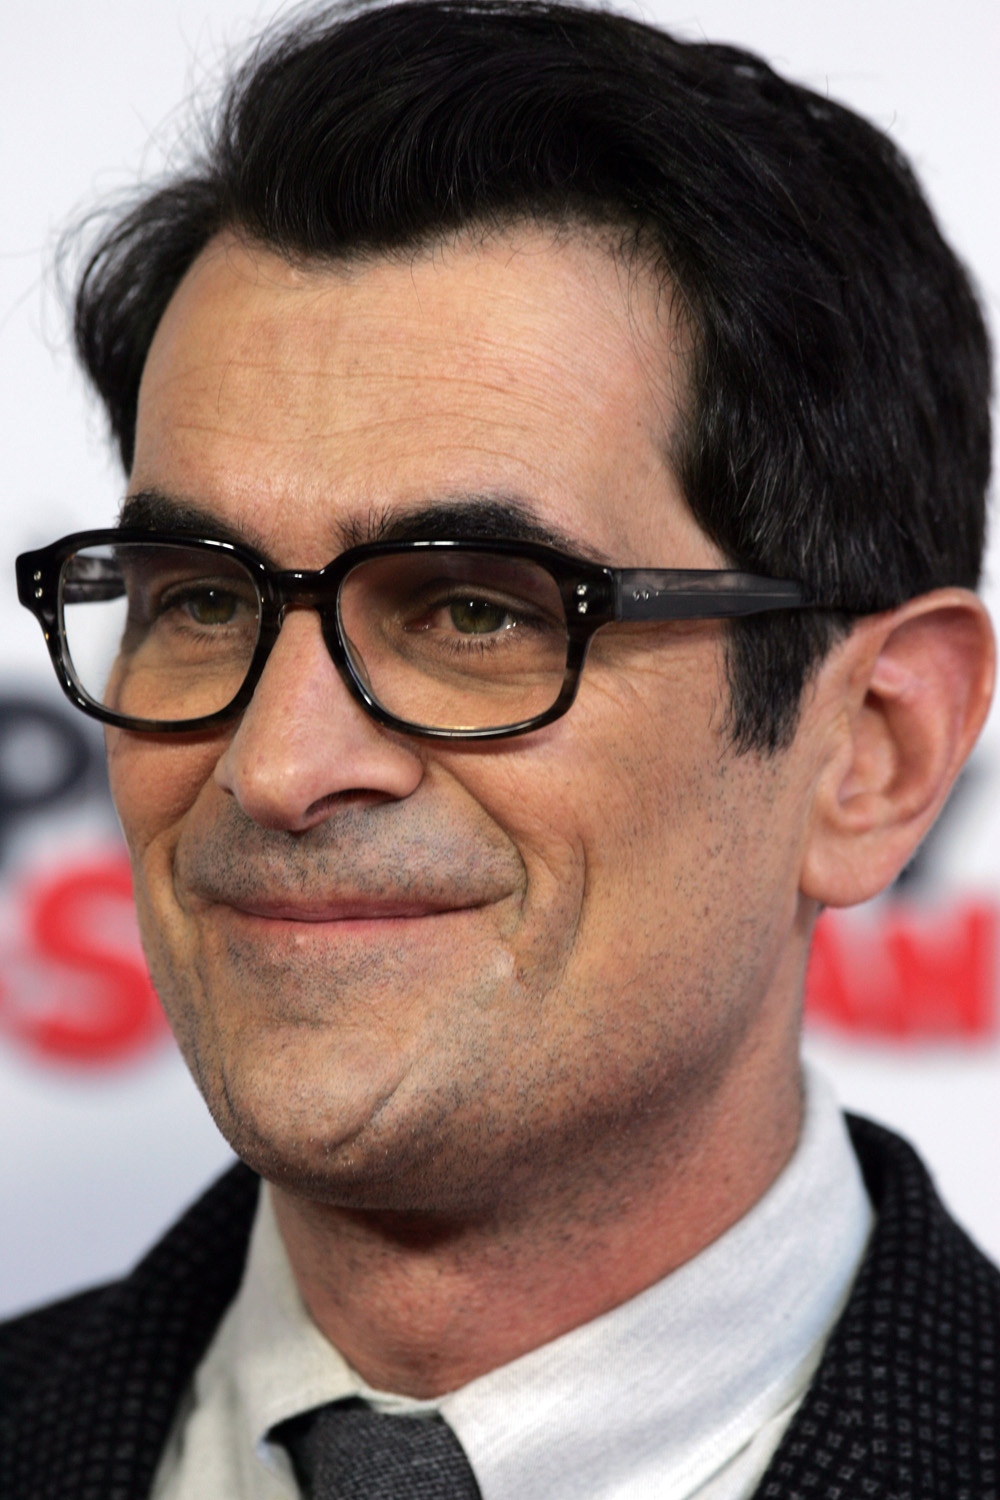 Ty Burrell, photo by Eva Rinaldi / CC BY-SA (https://creativecommons.org/licenses/by-sa/2.0